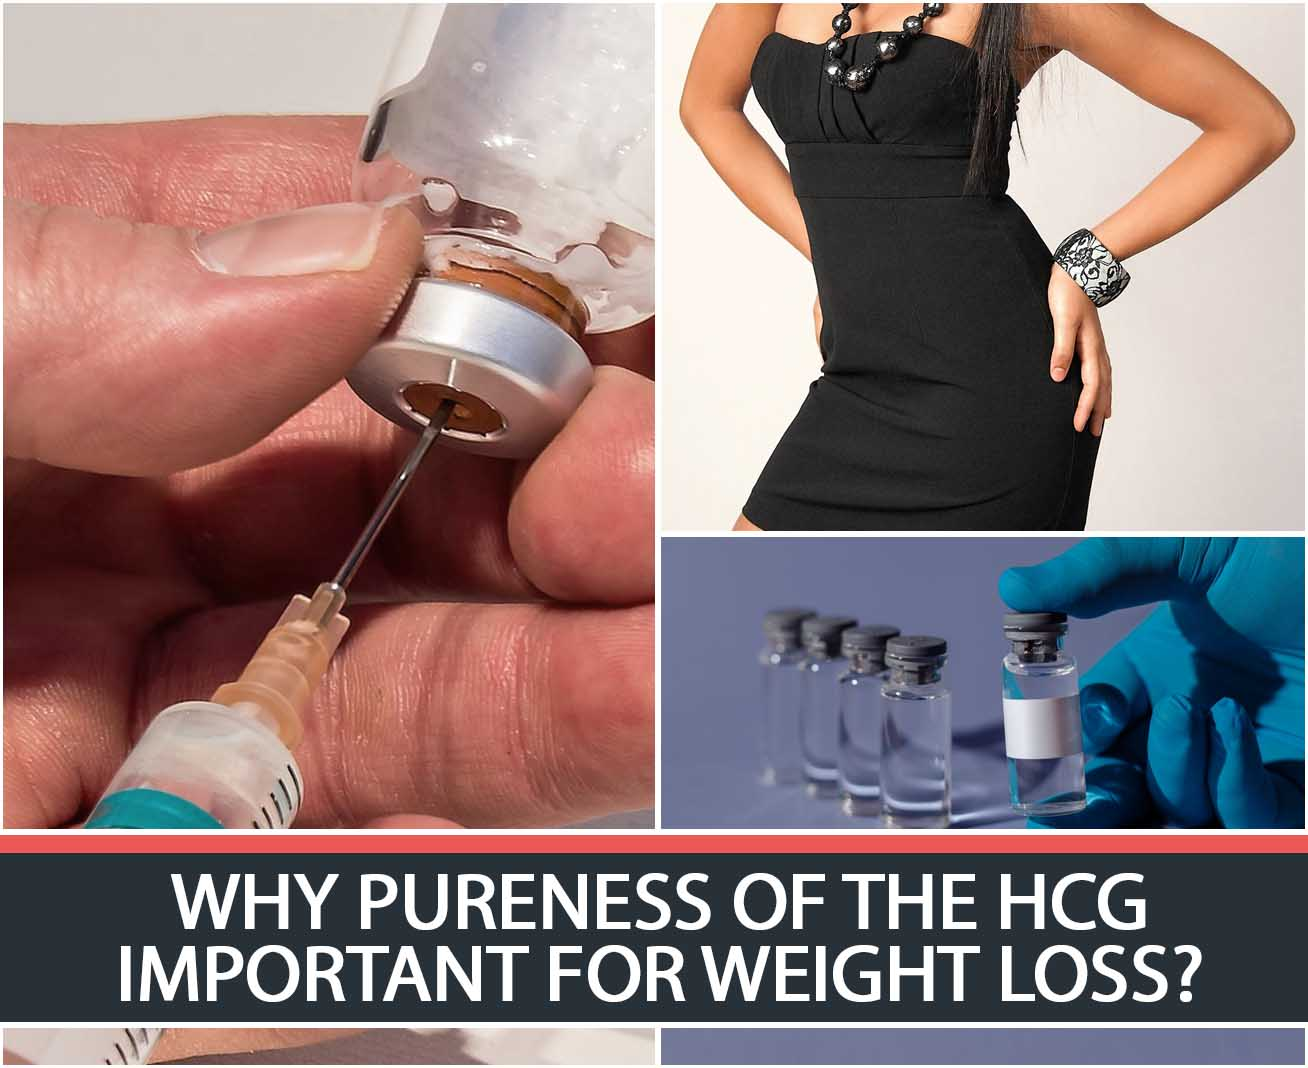 WHY PURENESS OF THE HCG IMPORTANT FOR WEIGHT LOSS?